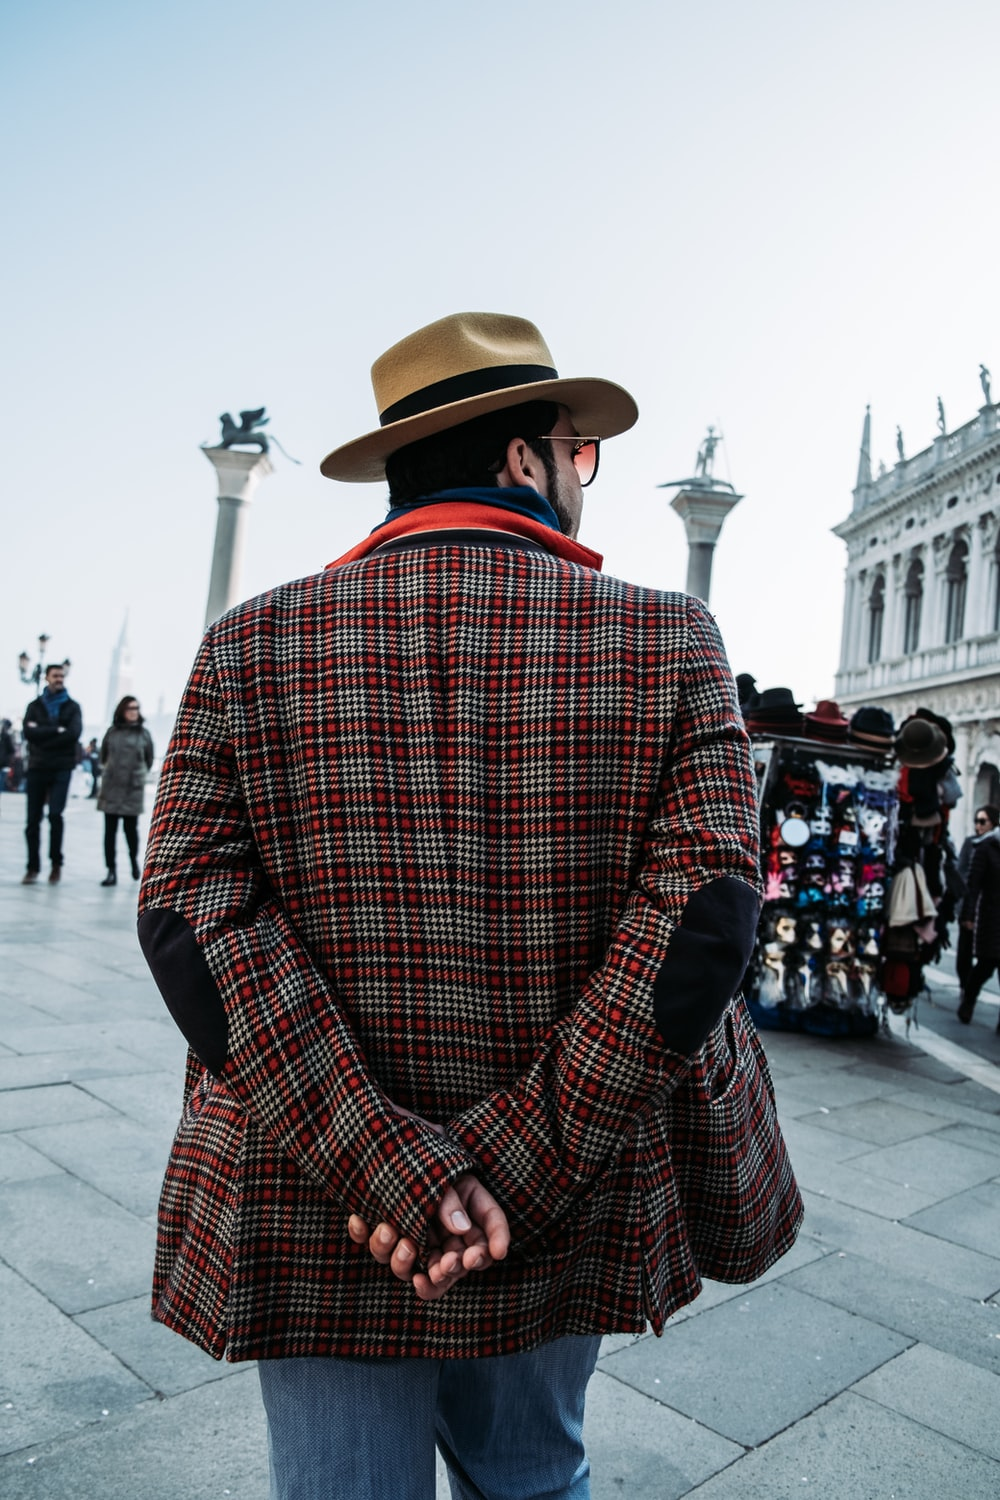 man in red plaid jacket